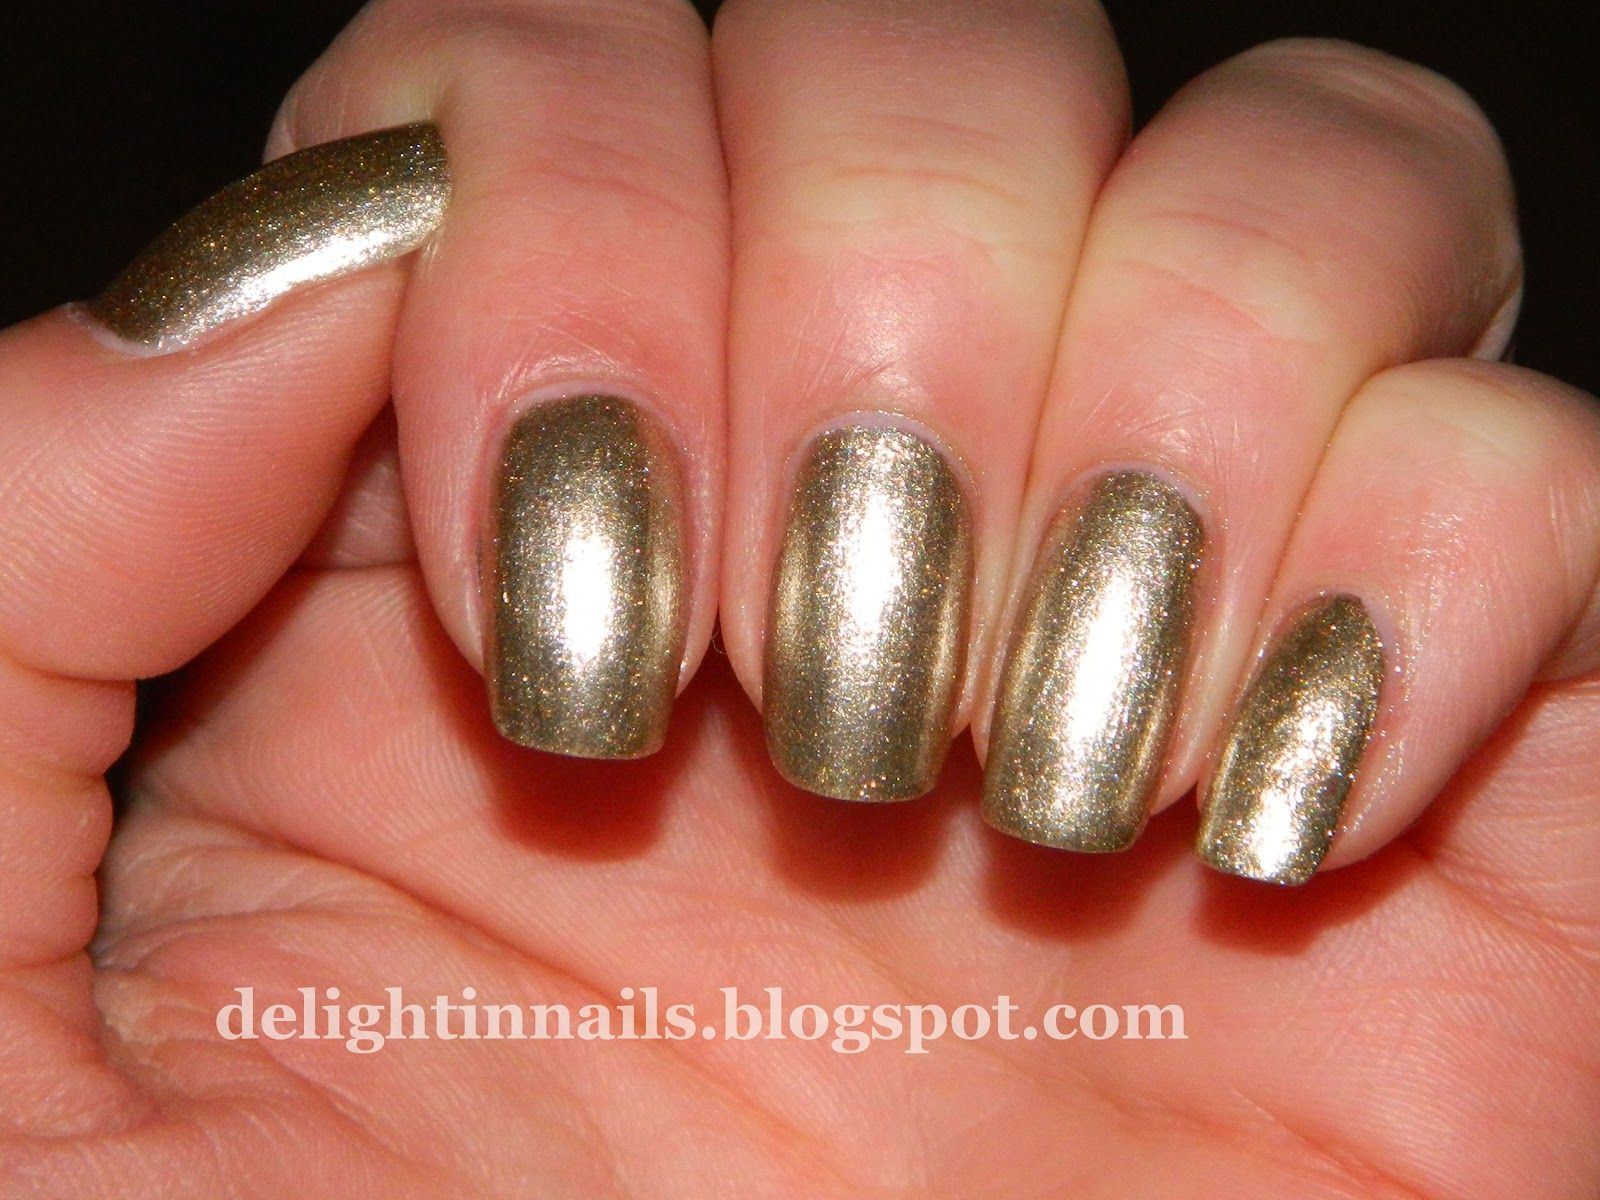 Delight in Nails: 10 Day Holiday Nail Art Challenge: Day 5 - Holiday Song - Julep Sienna